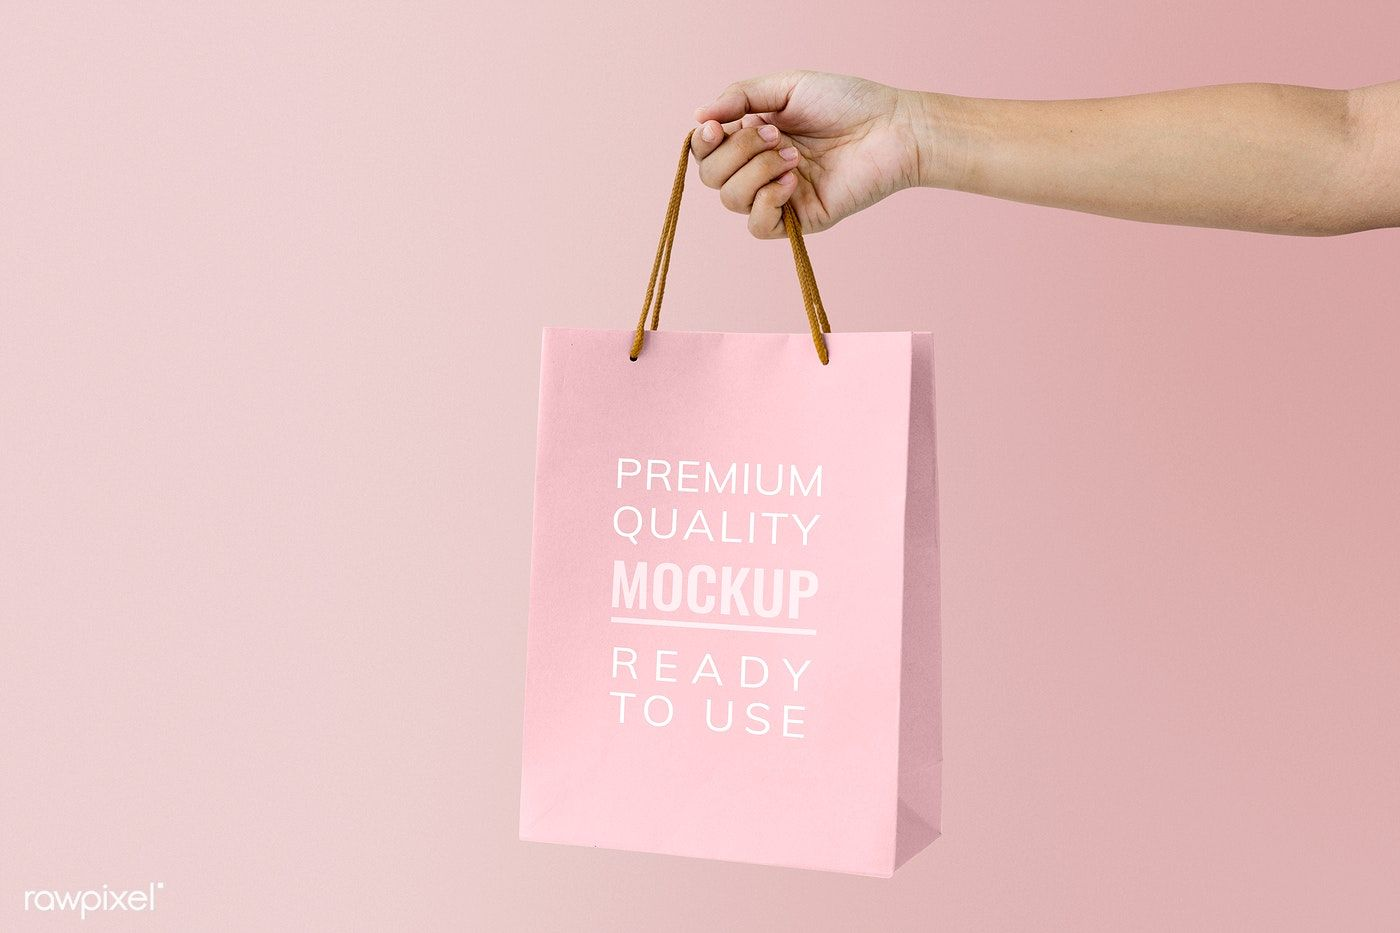 Download Download Premium Psd Of Woman Holding A Pink Paper Bag Mockup 894848 Bag Mockup Paper Bag Design Paper Bag